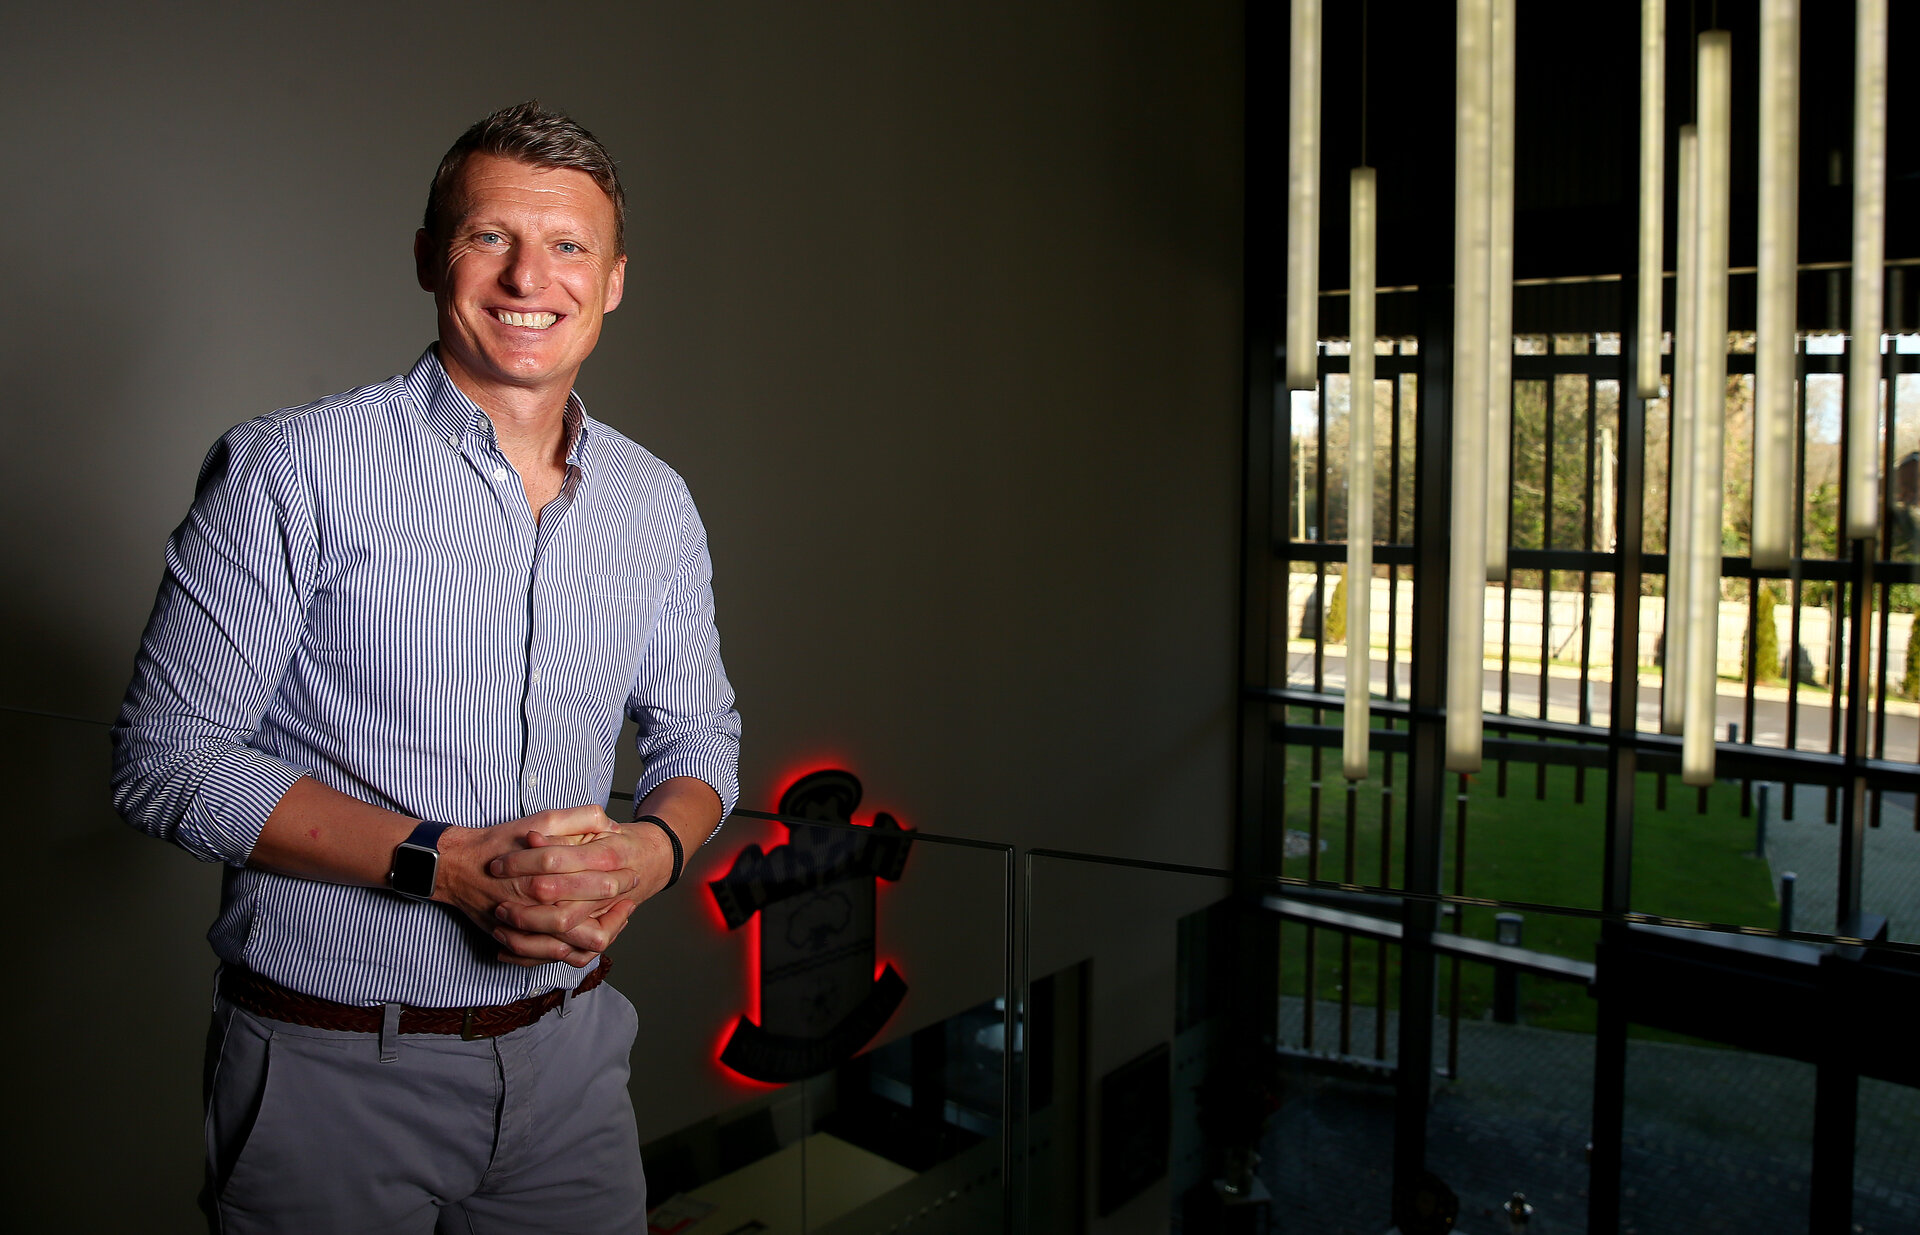 SOUTHAMPTON, ENGLAND - JANUARY 24: Southampton FC Director of Football Operations Matt Crocker, pictured at the Staplewood Campus on January 24, 2020 in Southampton, England. (Photo by Matt Watson/Southampton FC via Getty Images)